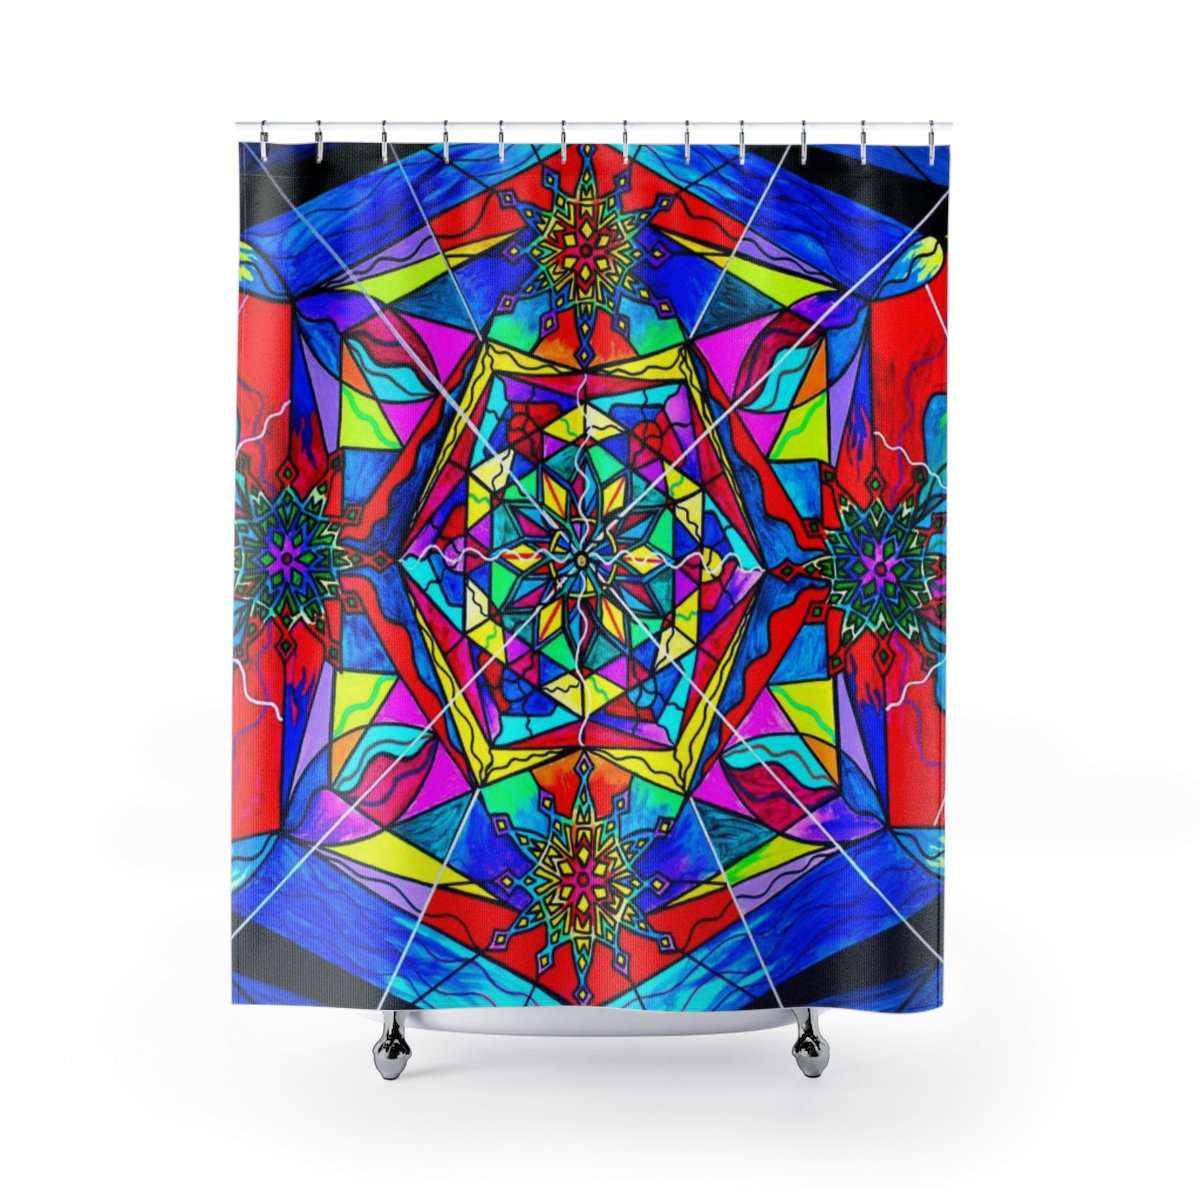 Gratitude - Shower Curtains